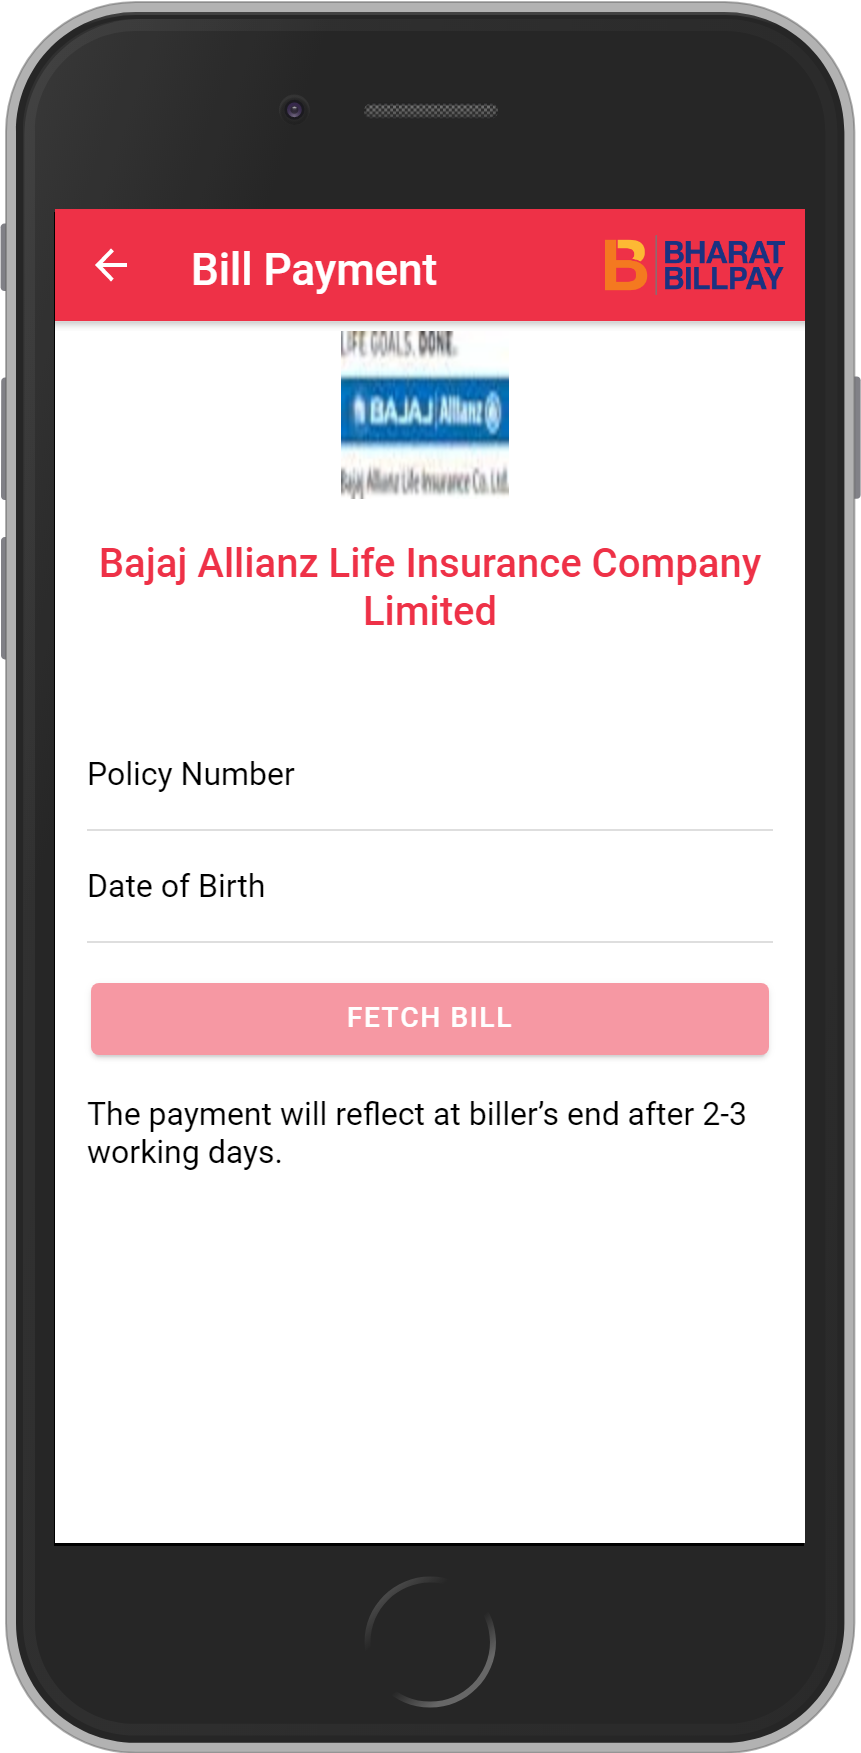 Get UNLIMITED <b>0.10%</b> CASHBACK on Bajaj Allianz Life Insurance Company Limited Payment.